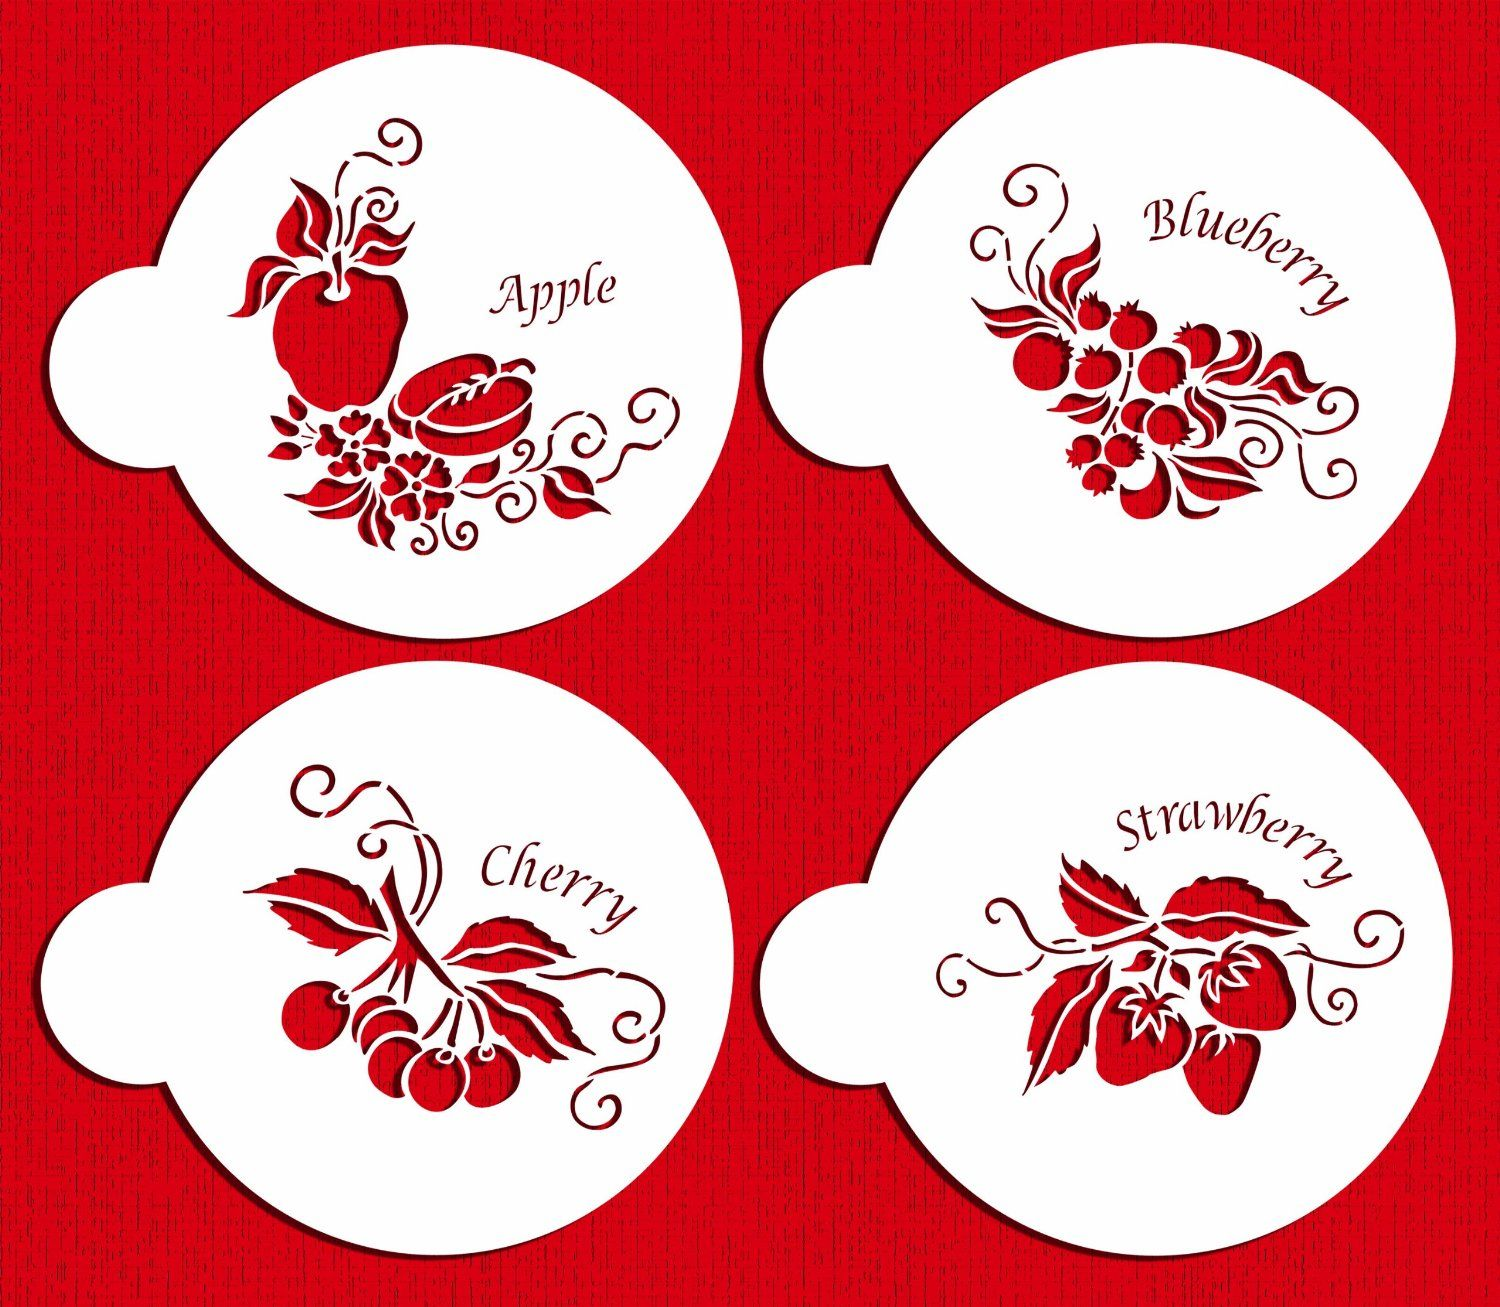 Amazon Fruit Toppers Cake Stencilsdesigner Stencils Home Alluring Kitchen Stencil Designs Inspiration